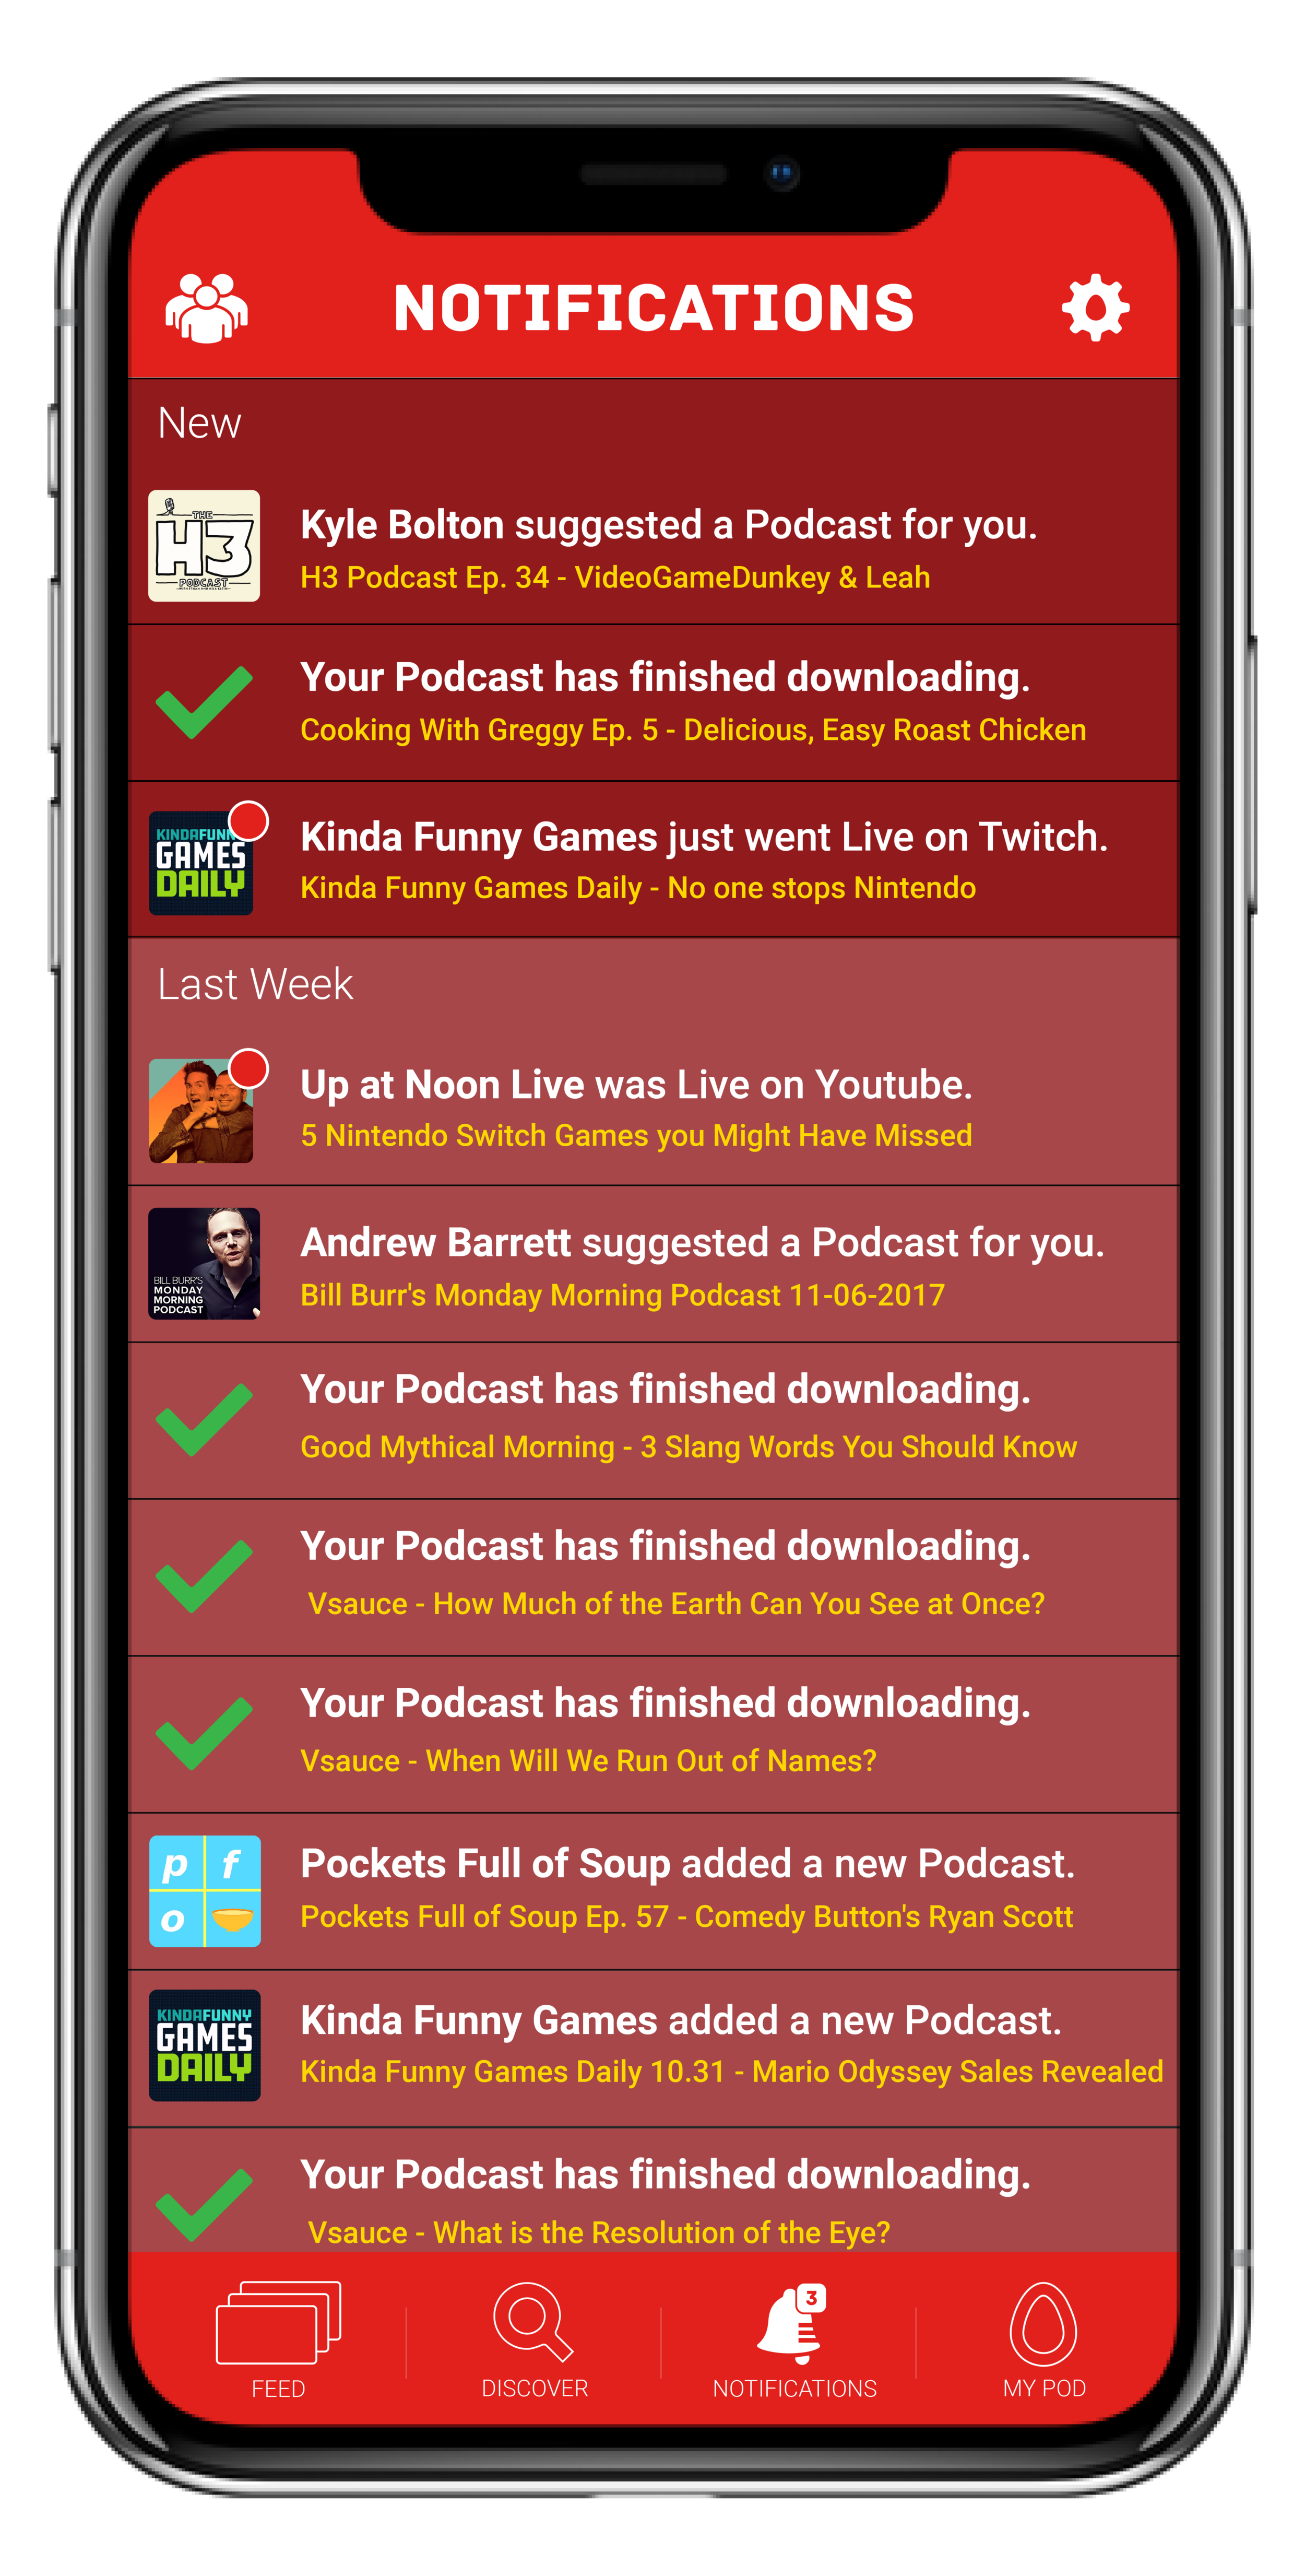 - Share the LoveUsers can suggest Podcasts to their friends, encouraging sharing their personal tastes with others to find a common interest.No Data, No ProblemThe status of your downloaded podcasts will be listed here and you'll be notified when it's ready to be listened to offline.